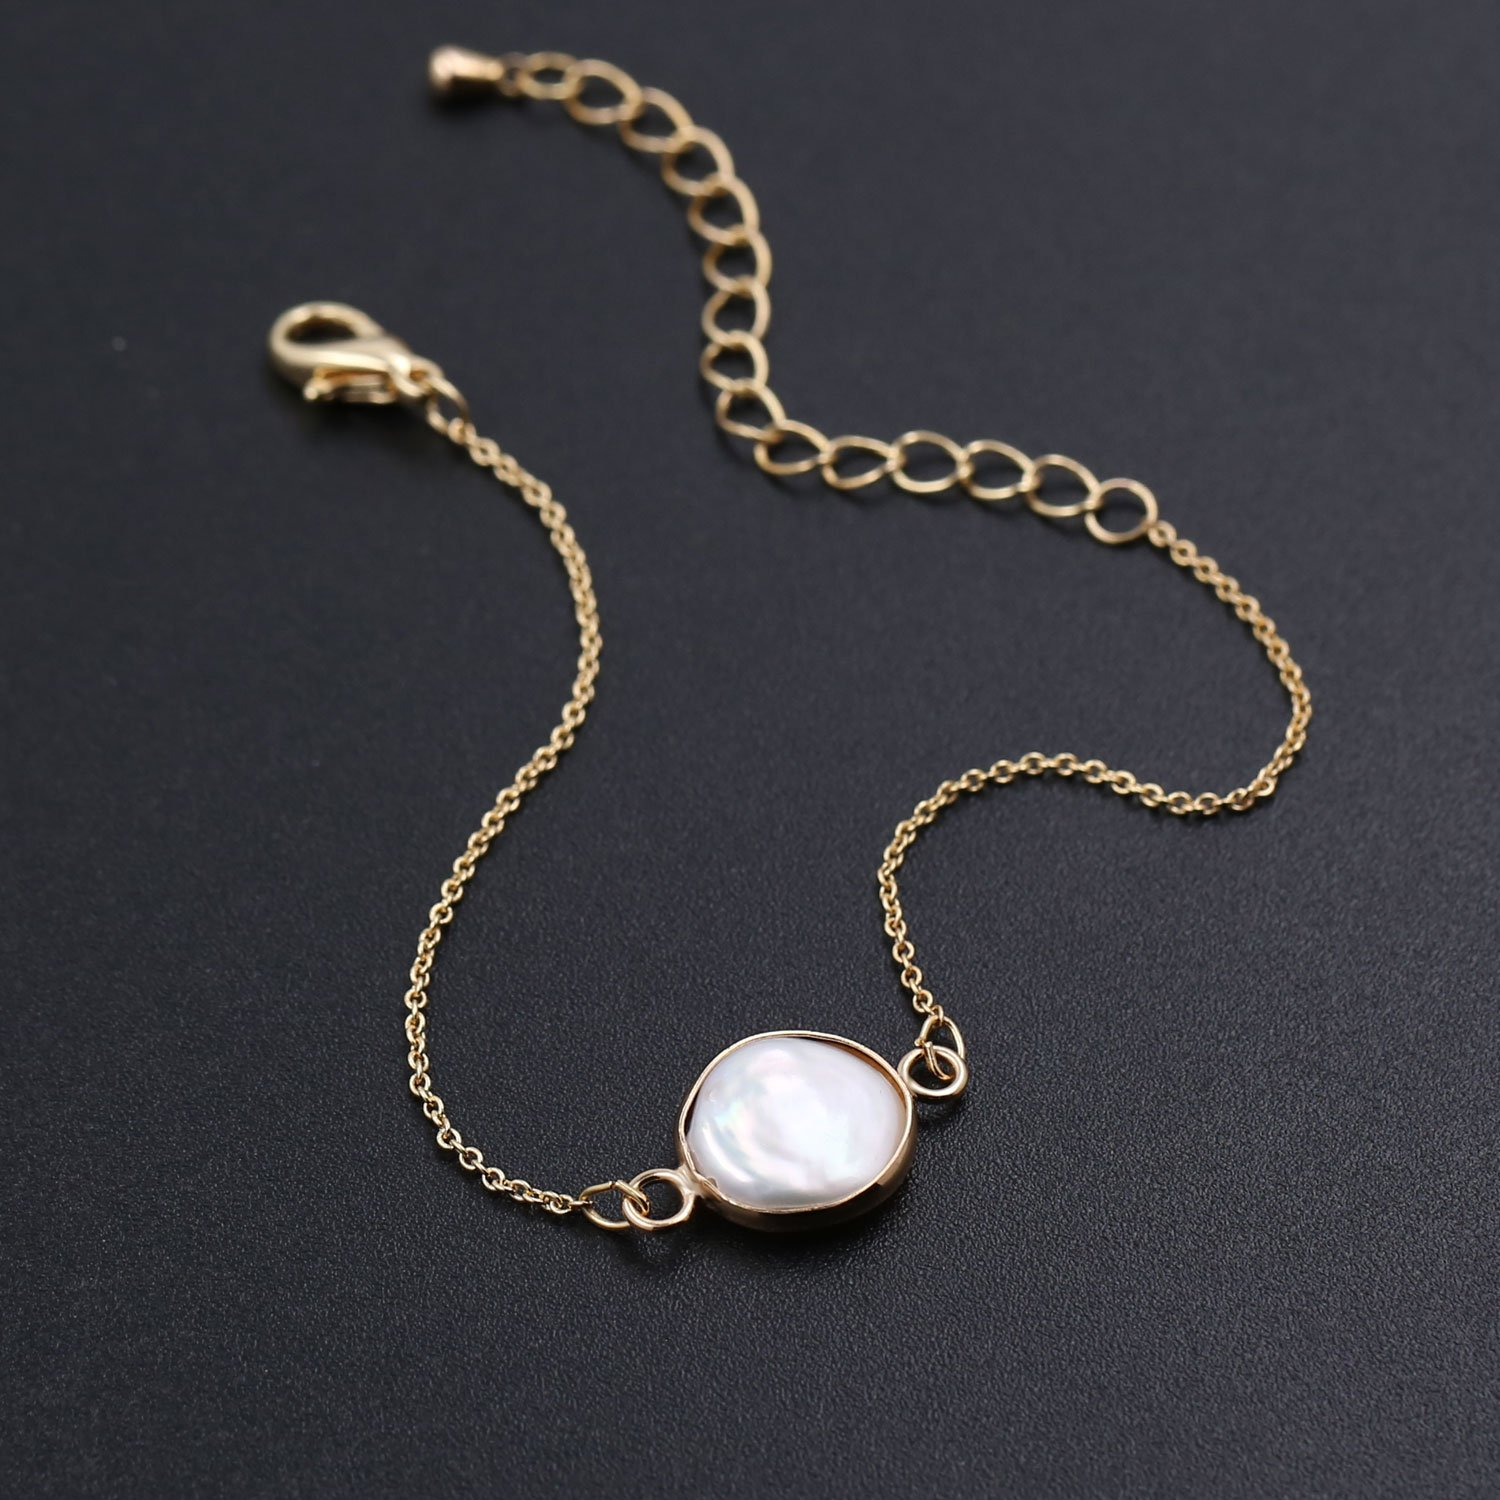 6463634b6 Amazon.com: COZLANE 14K Gold Simple Natural Pearl Shell Bracelet for Women  Gift Pack: Jewelry